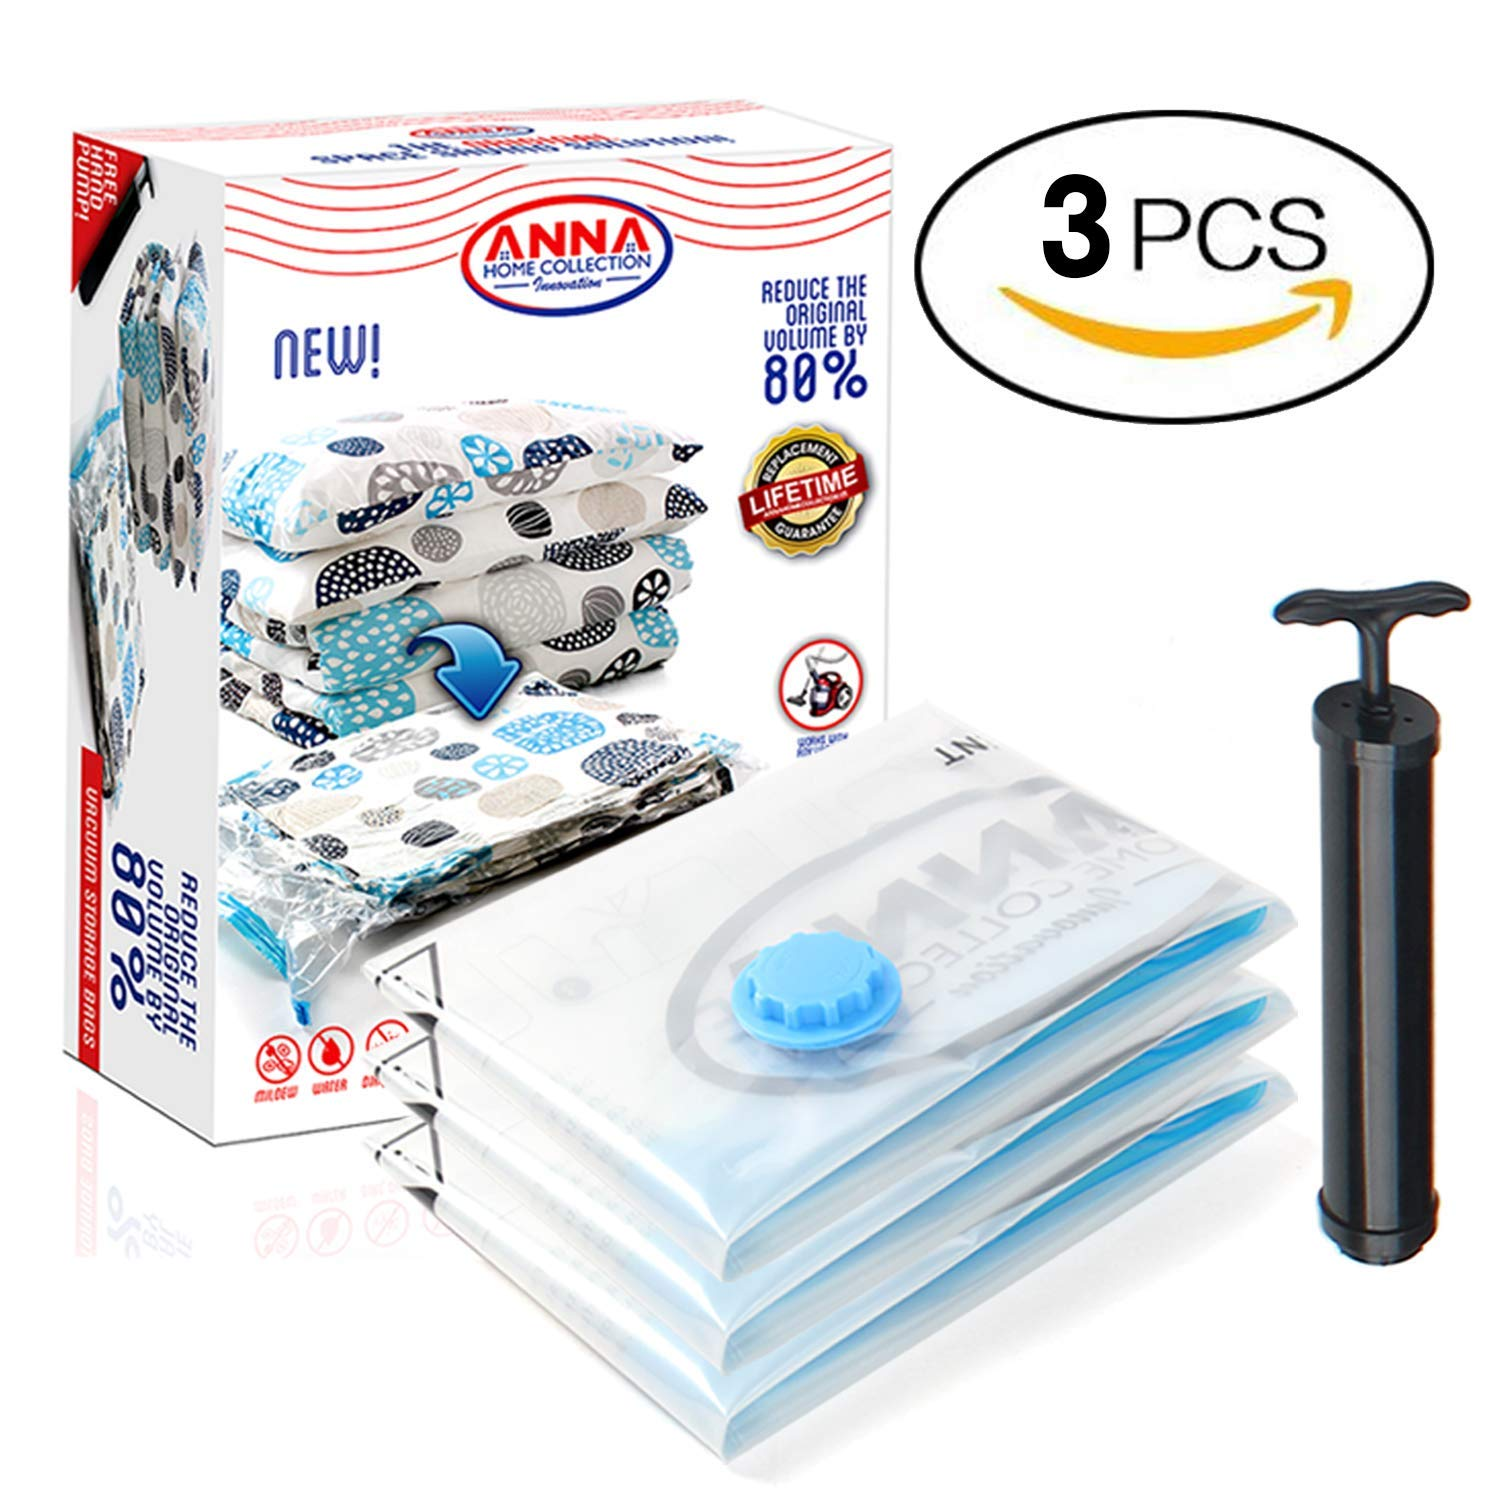 Anna Home Jumbo Vacuum Storage Bags (3 Jumbo) Space Saver Storage Bags for Travel. Durable and Reusable, Travel Hand Pump Included